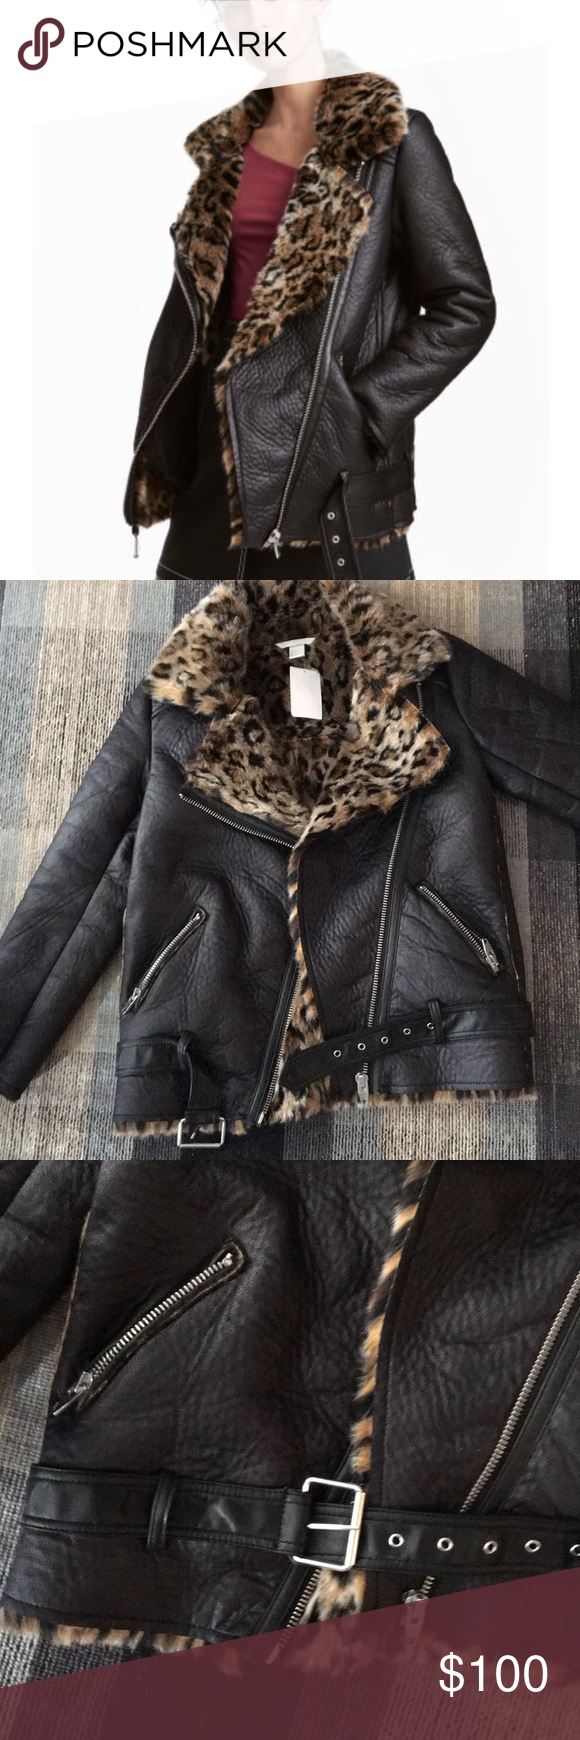 H&M oversized biker jacket coat with leopard fur NWT